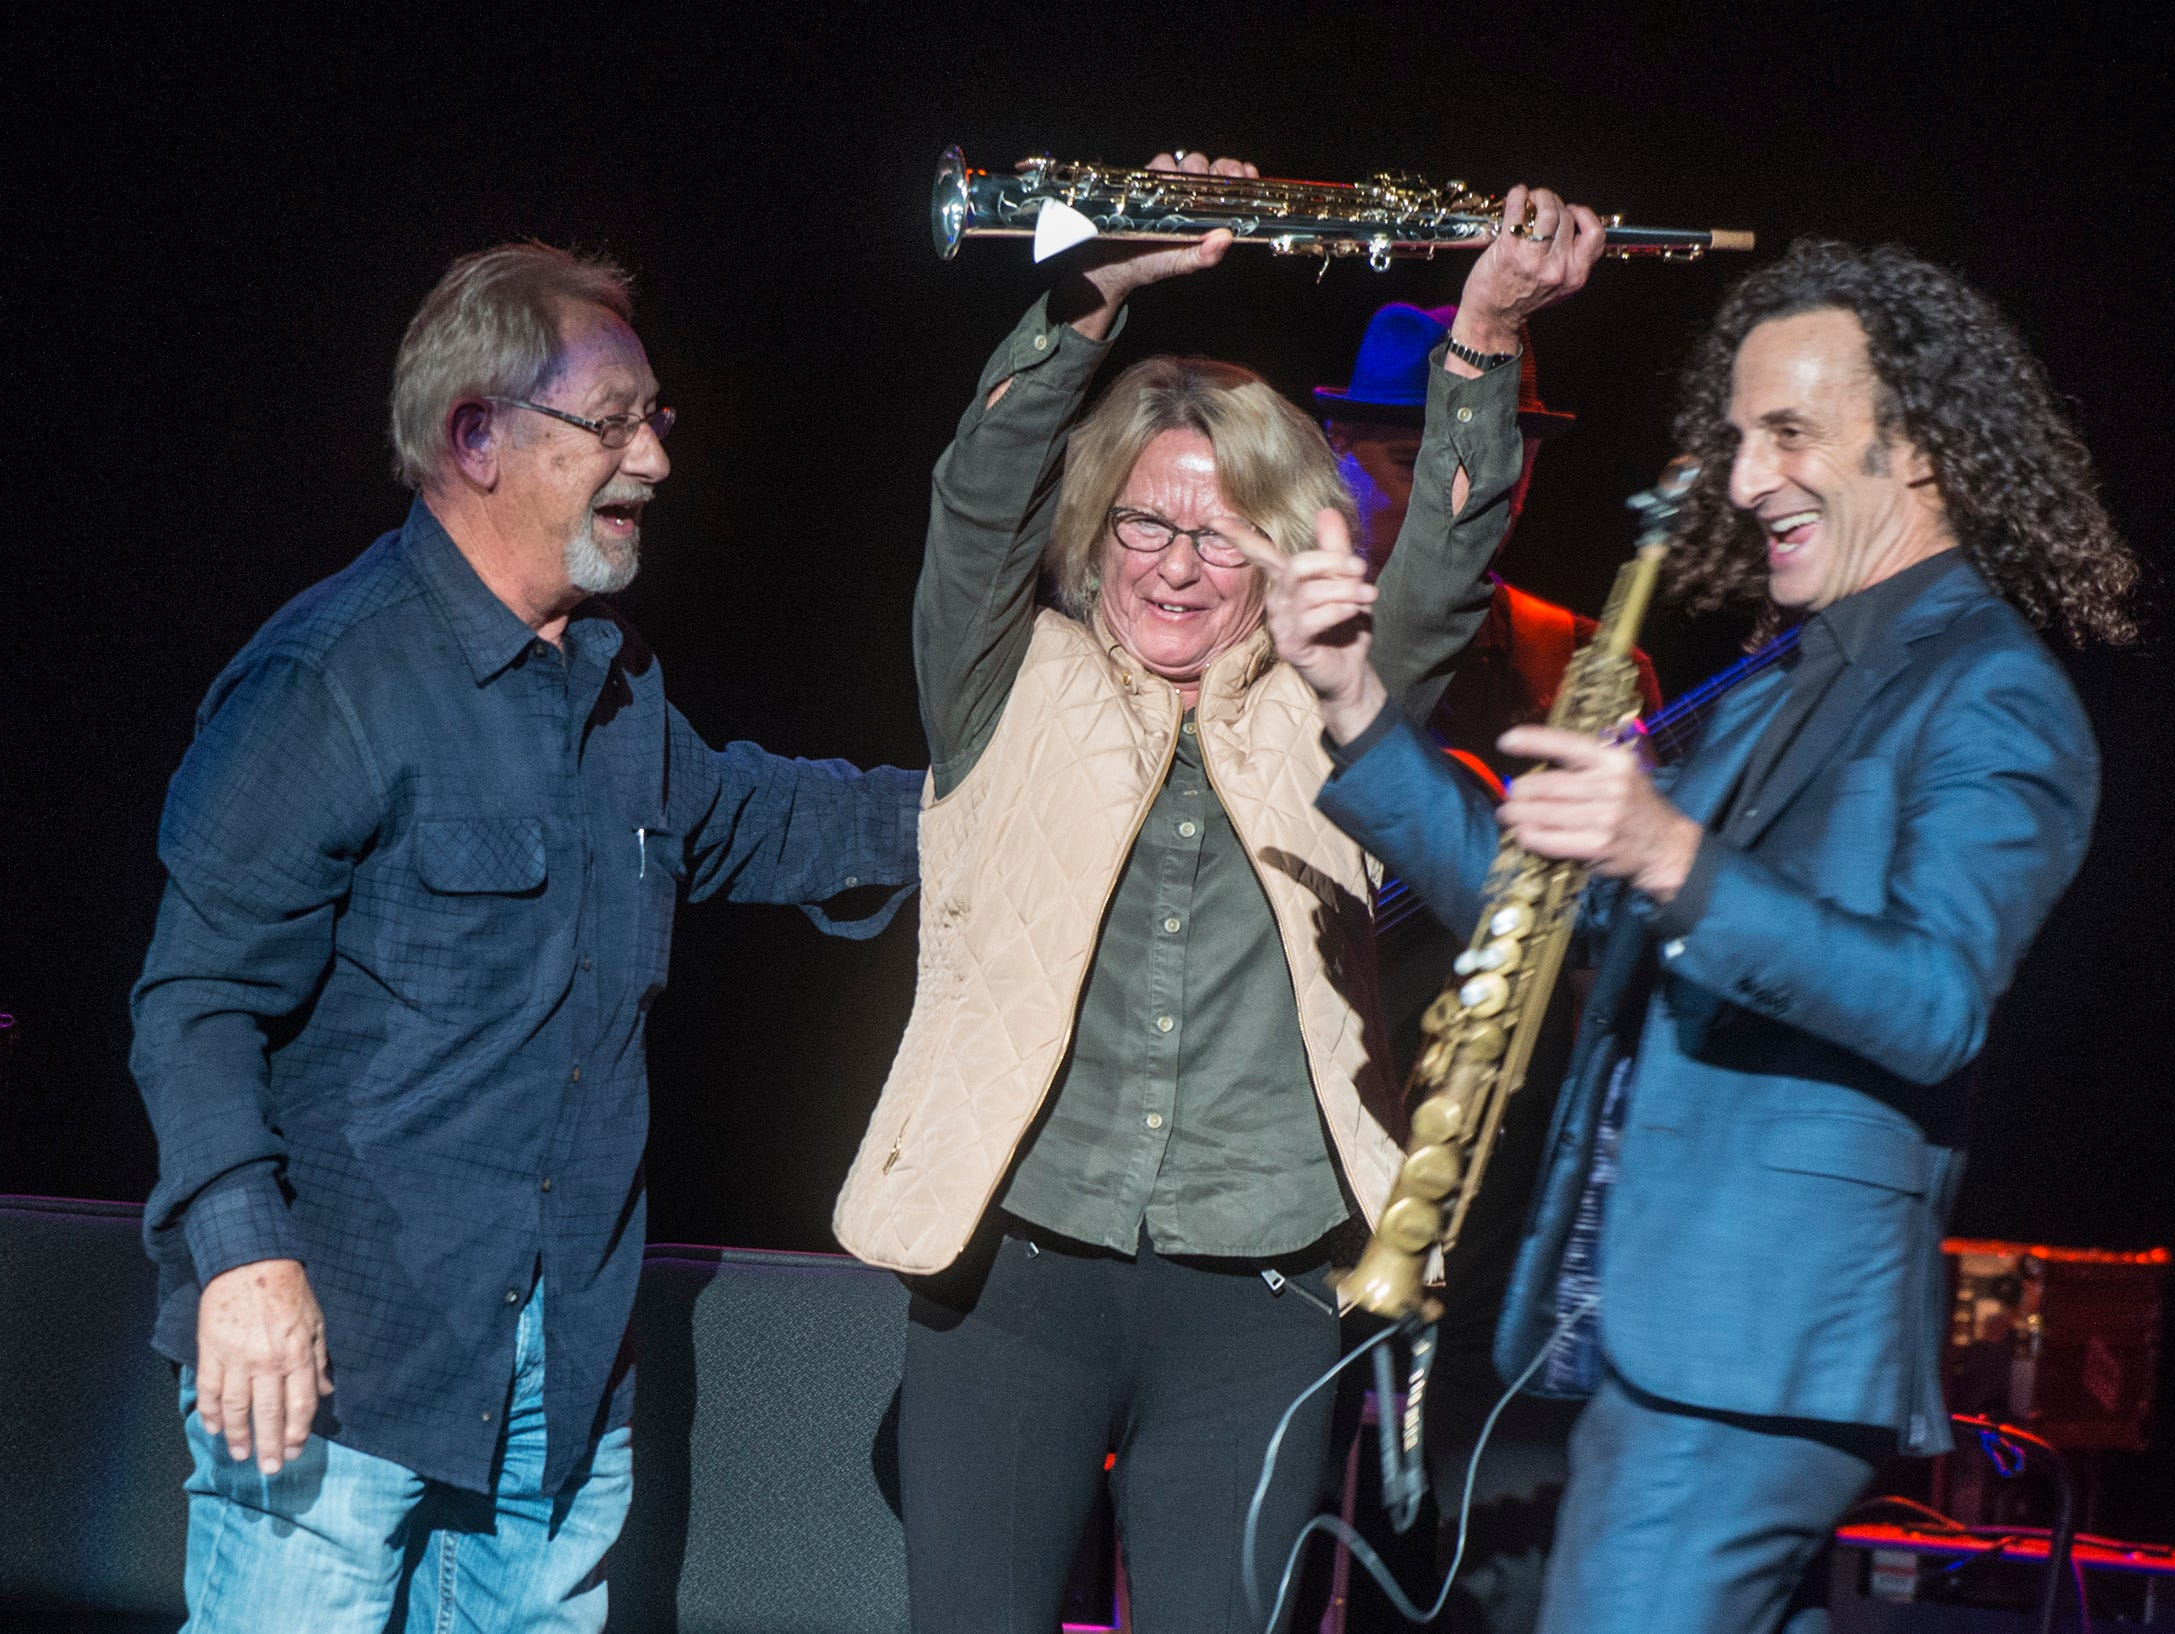 Margot Walbert and her husband Frankie Edwards of Cullman County won a raffle for a saxophone from Kenny G on Thursday, Oct. 25, 2018, at the Montgomery Performing Arts Centre.